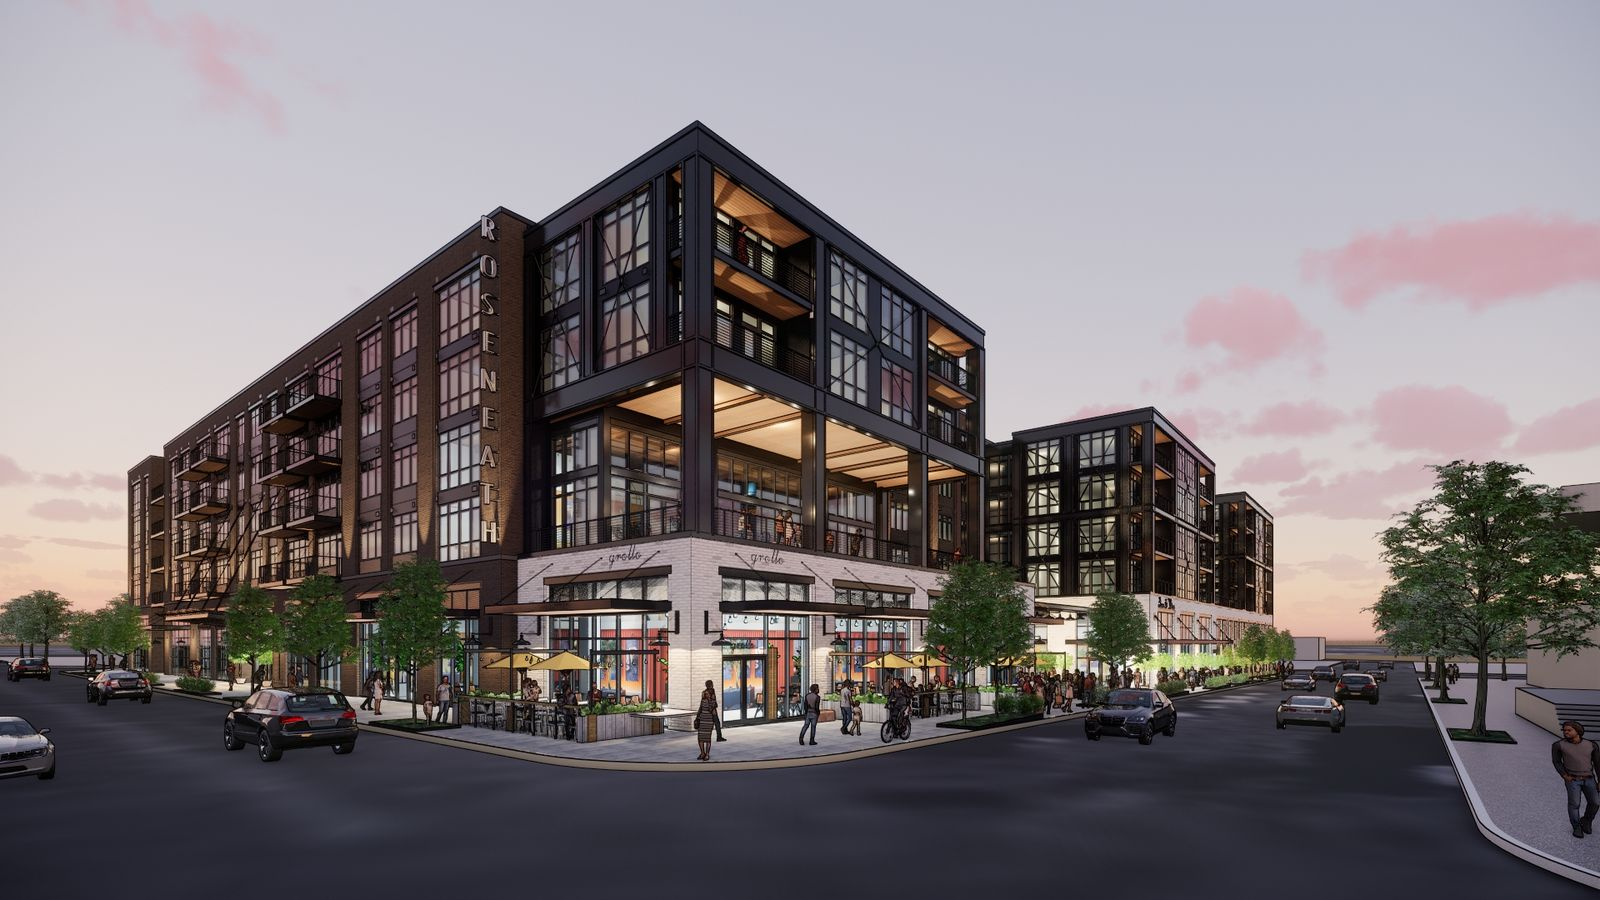 Construction Begins on New 350-Unit Mixed Use Apartment Community in Richmond's Vibrant Scott's Addition Neighborhood